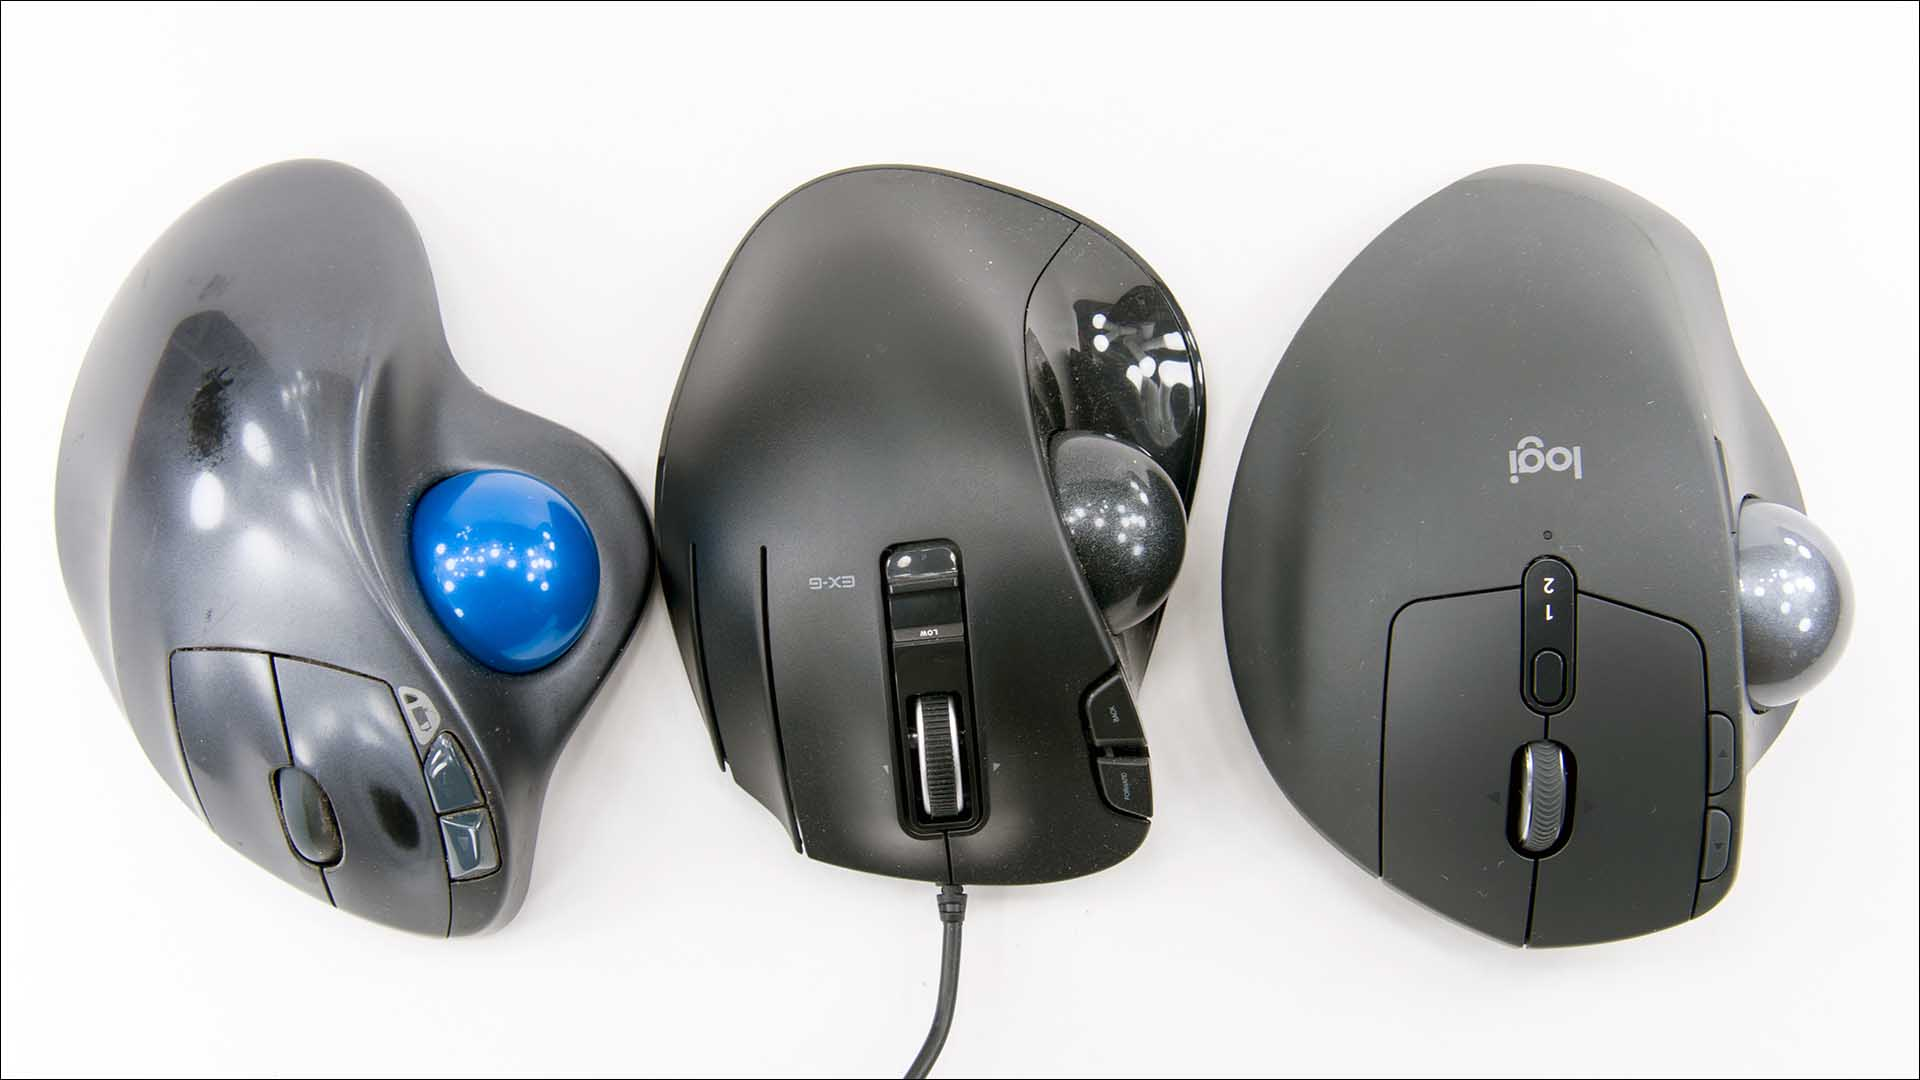 Logitech MX Ergo & MX Ergo Plus vs M570 vs ELECOM: The